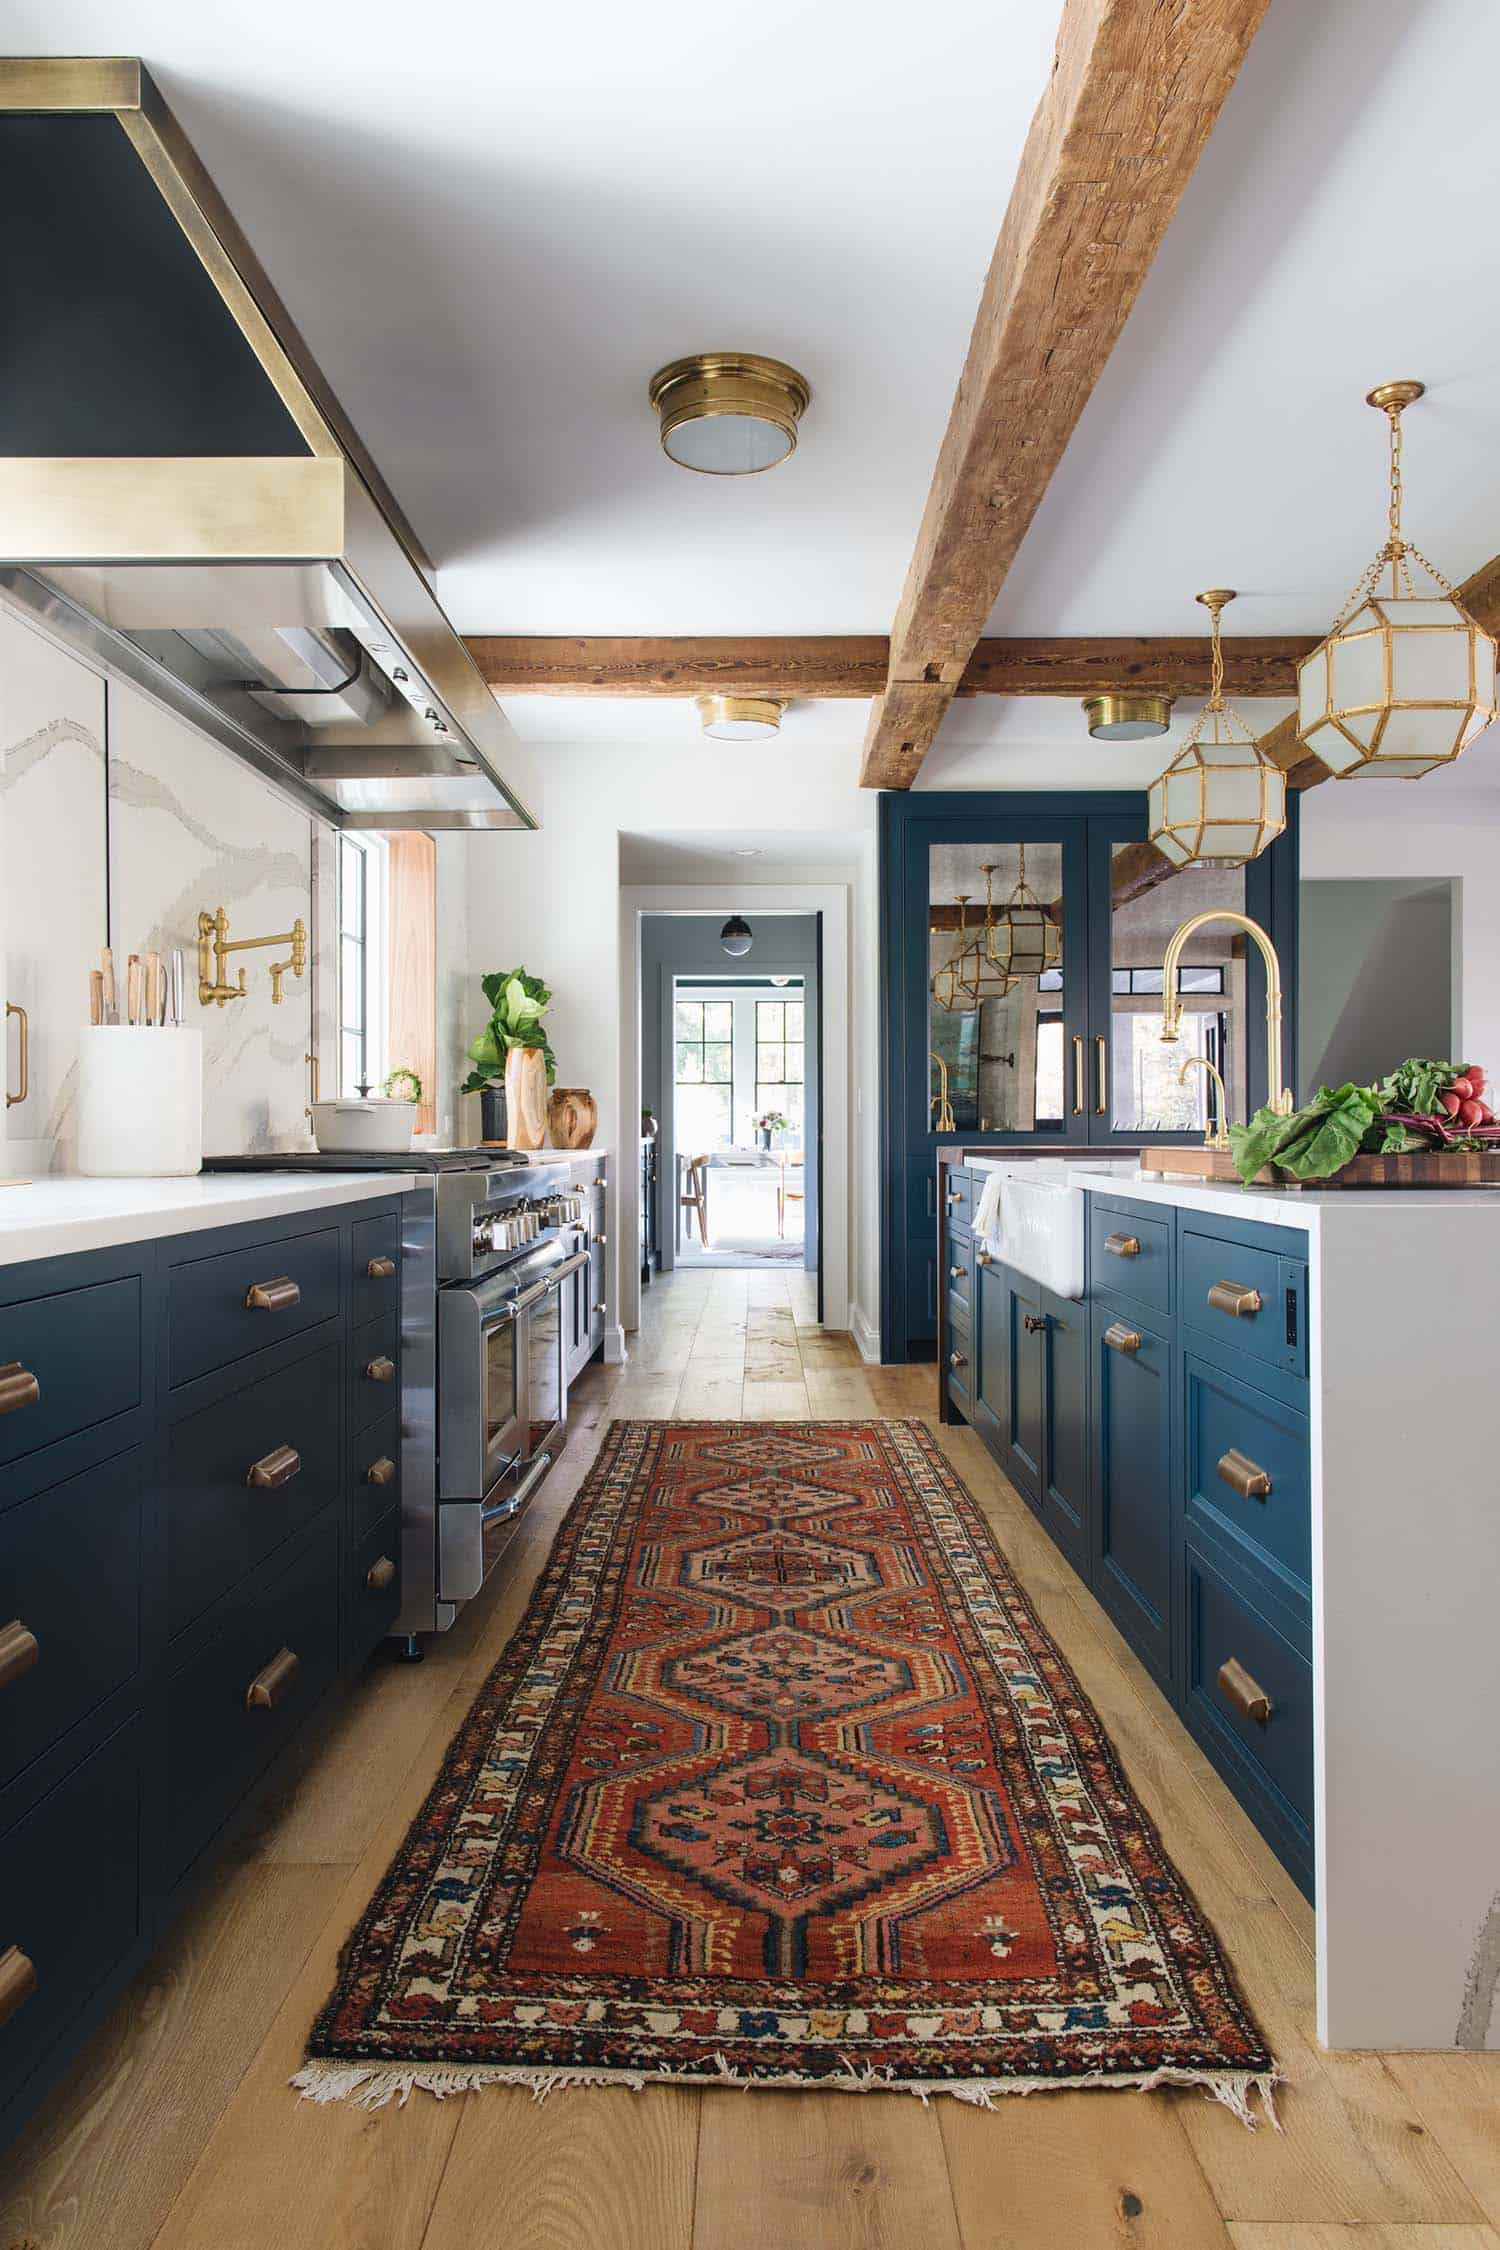 Modern Farmhouse Style-Jean Stoffer Design-27-1 Kindesign